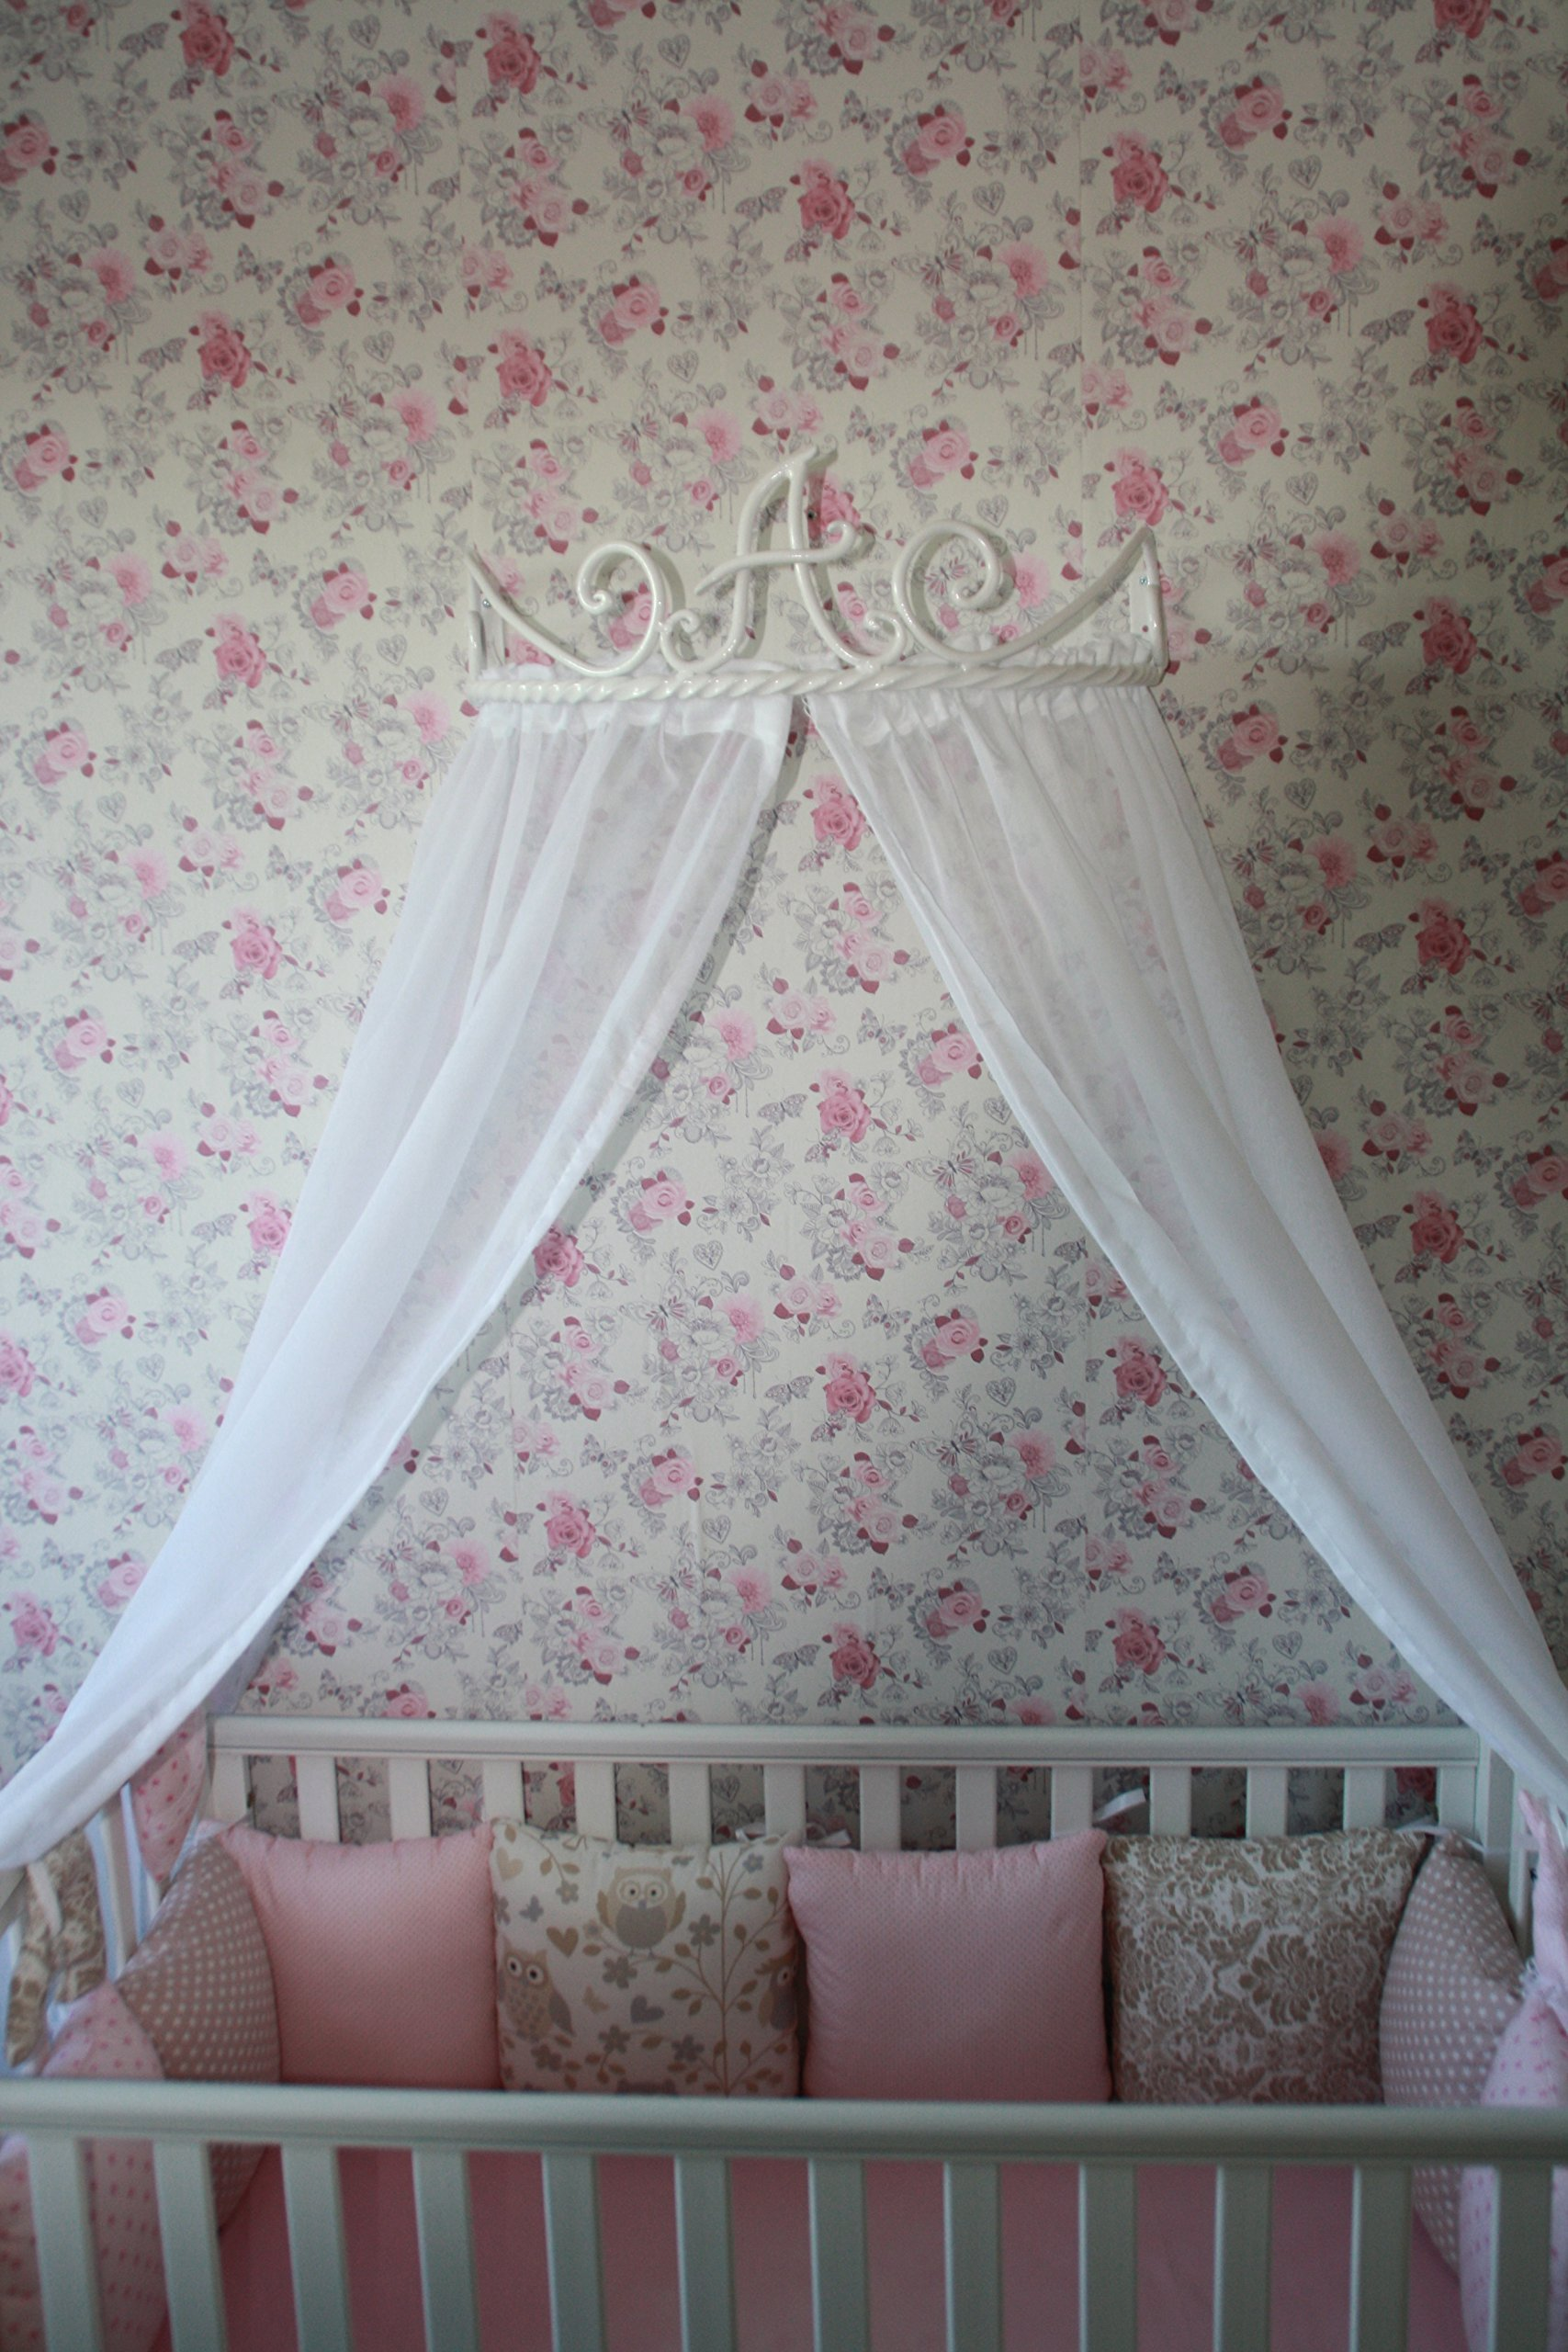 Bed Canopy Holder Crown Curtains Forged Queen Baby King Frame Princess Kids Crib Hot Forged Blacksmith Vintage Antique Style